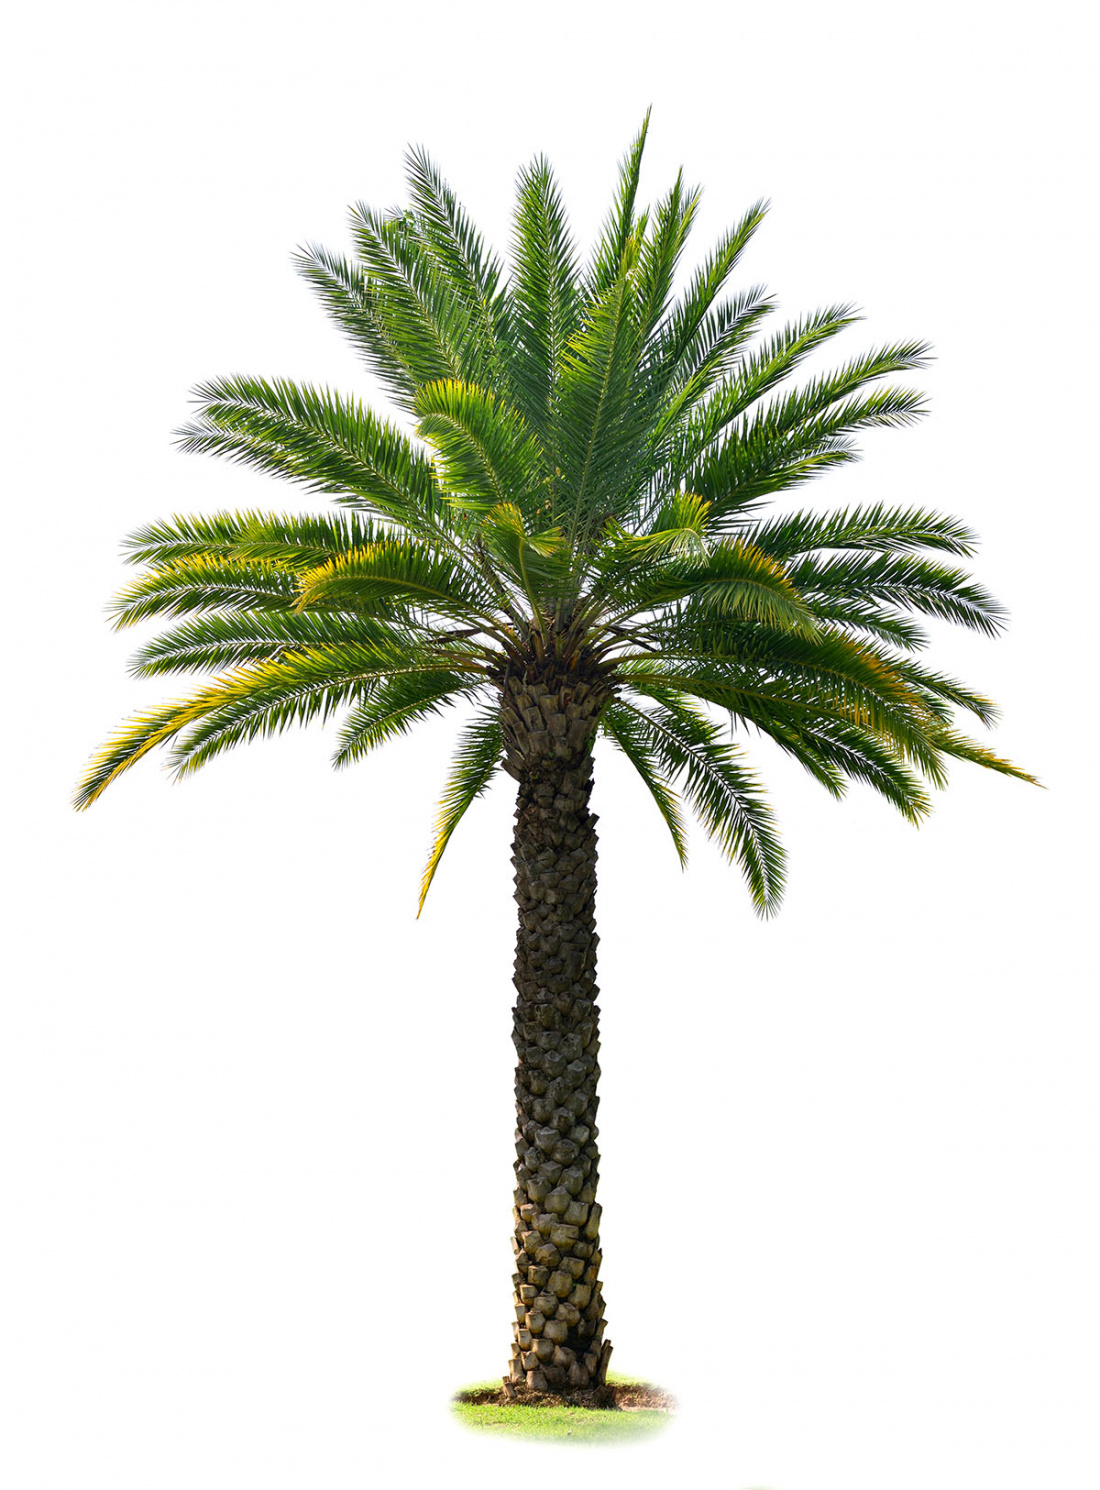 This is How to Prune a Date Palm Tree Image